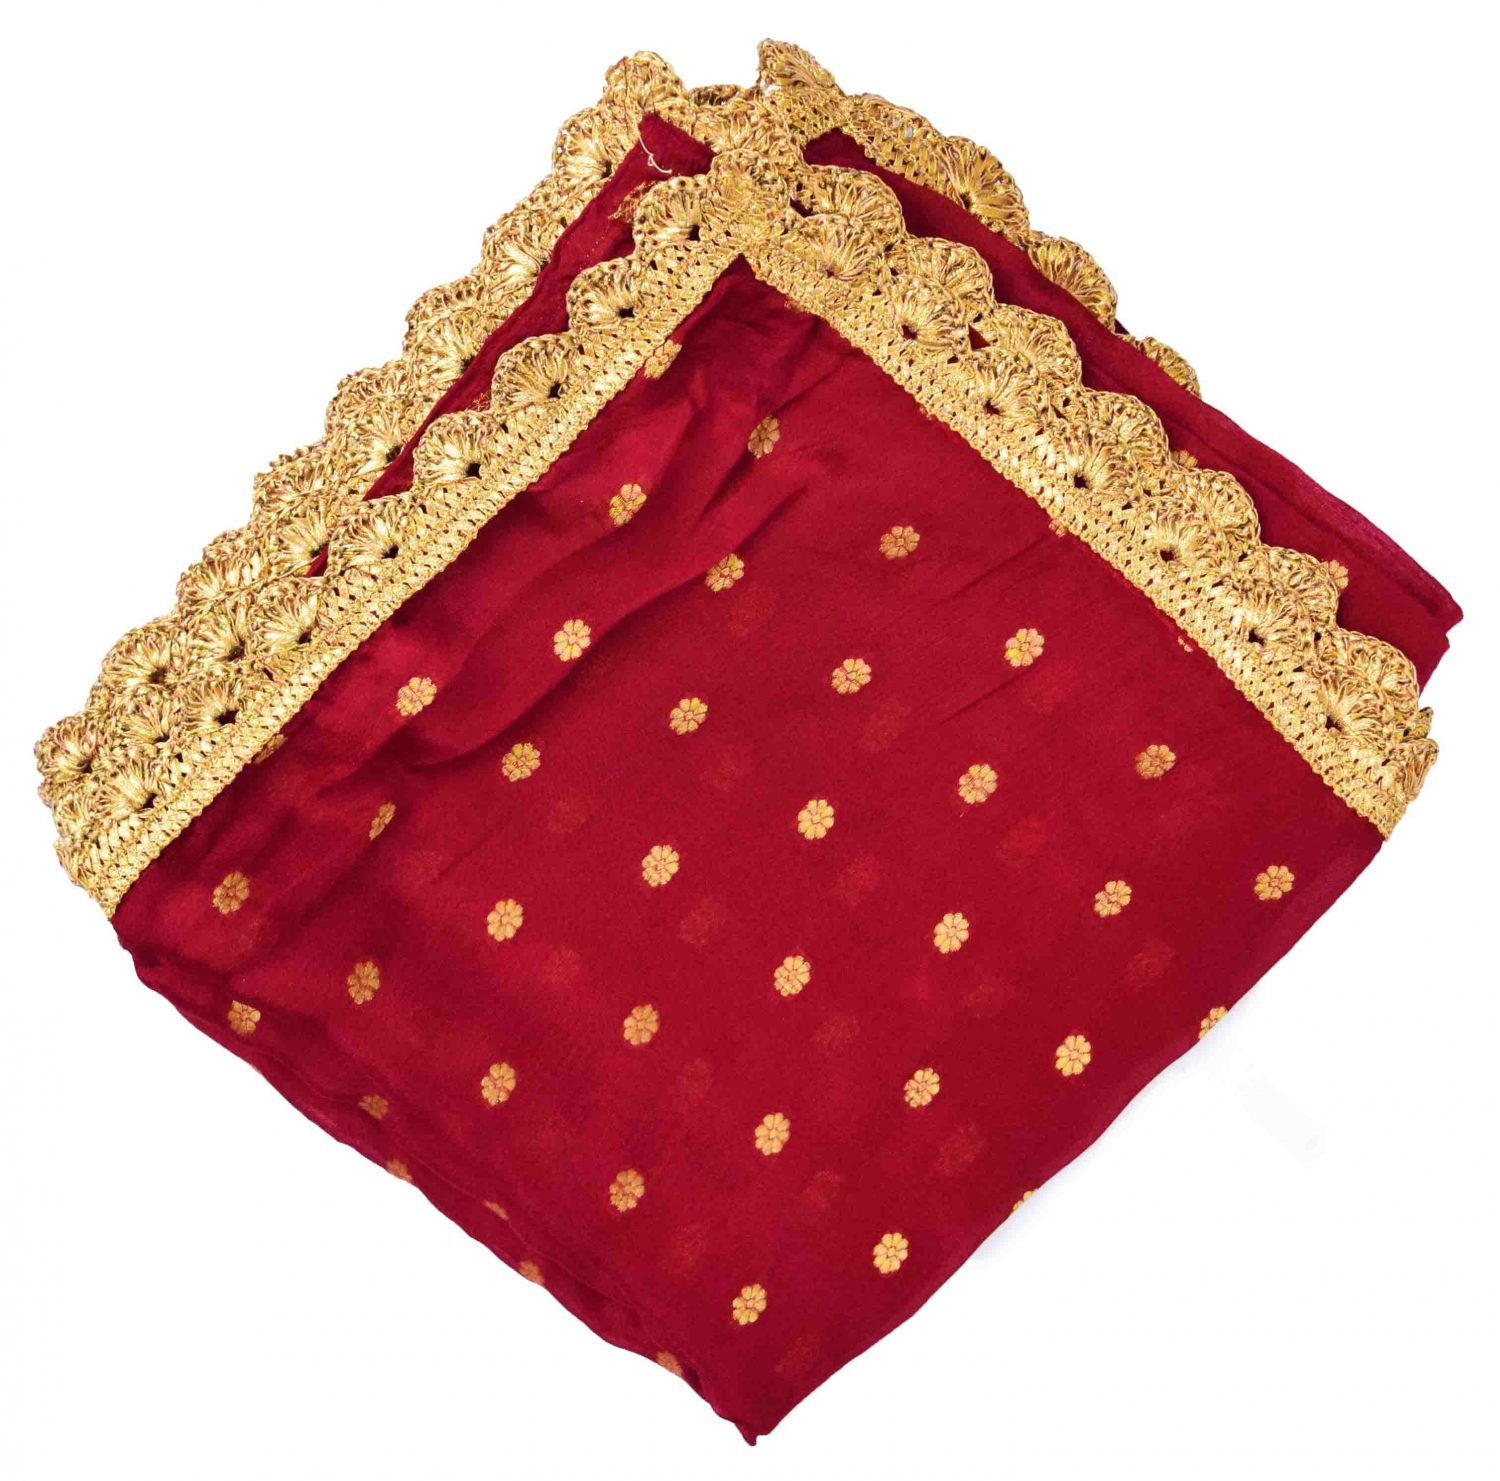 Golden Polka Print Dupatta Semi Chinon - Select Colour of your choice !! 2